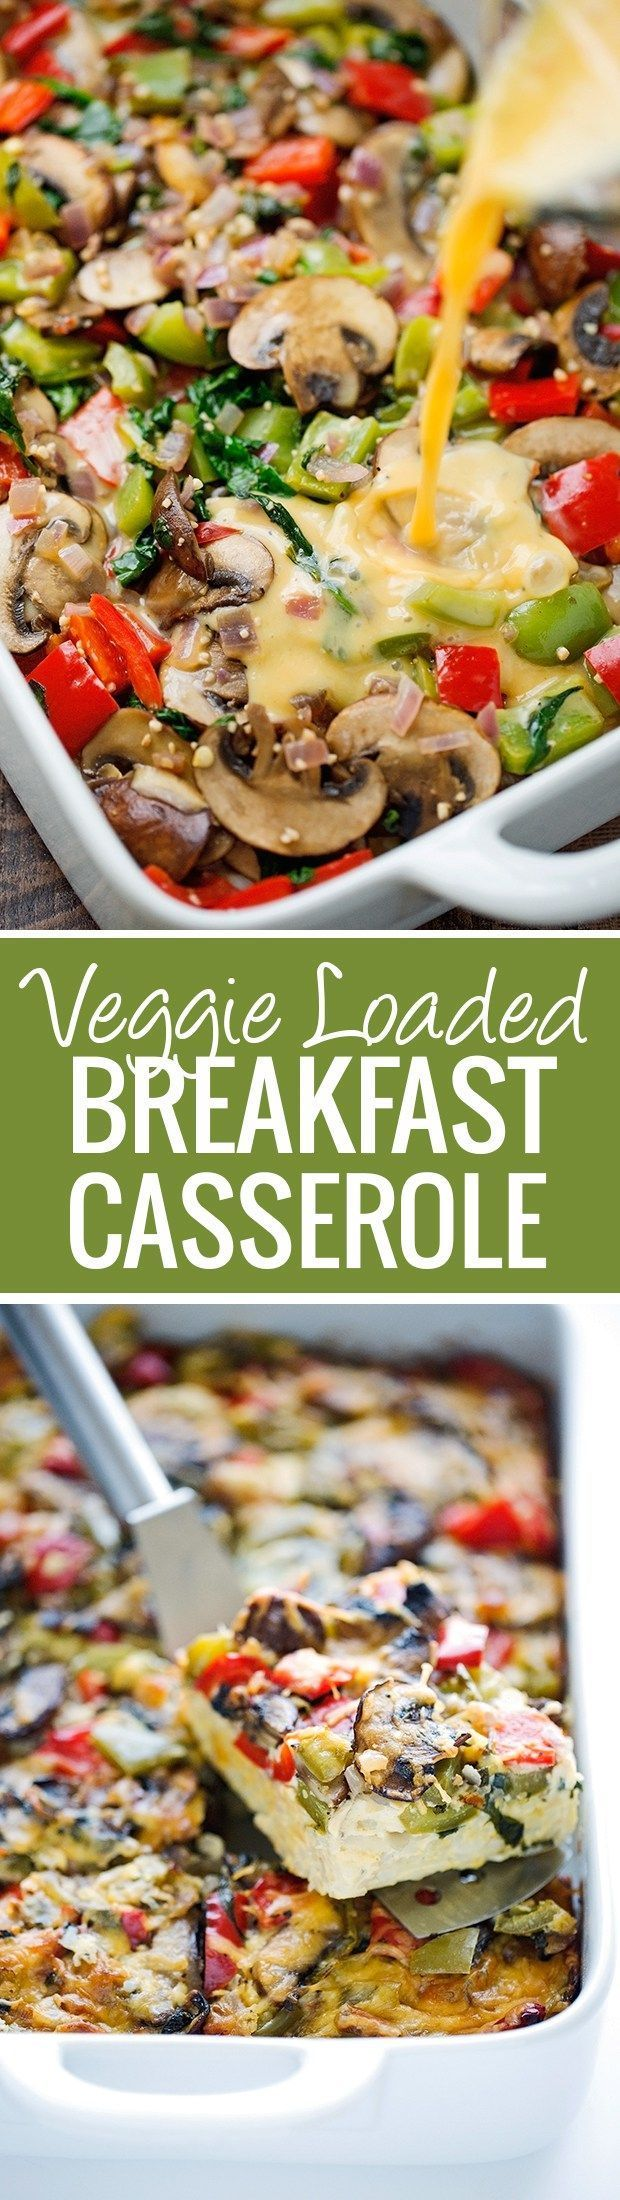 Primal Veggie-Loaded Breakfast Casserole Recipe | Little Spice Jar - Made with hash browns and all your favorite veggies! Add in rotisserie chicken, crumbled sausage or anything else you please - it's totally customizable and packed with nutrients!